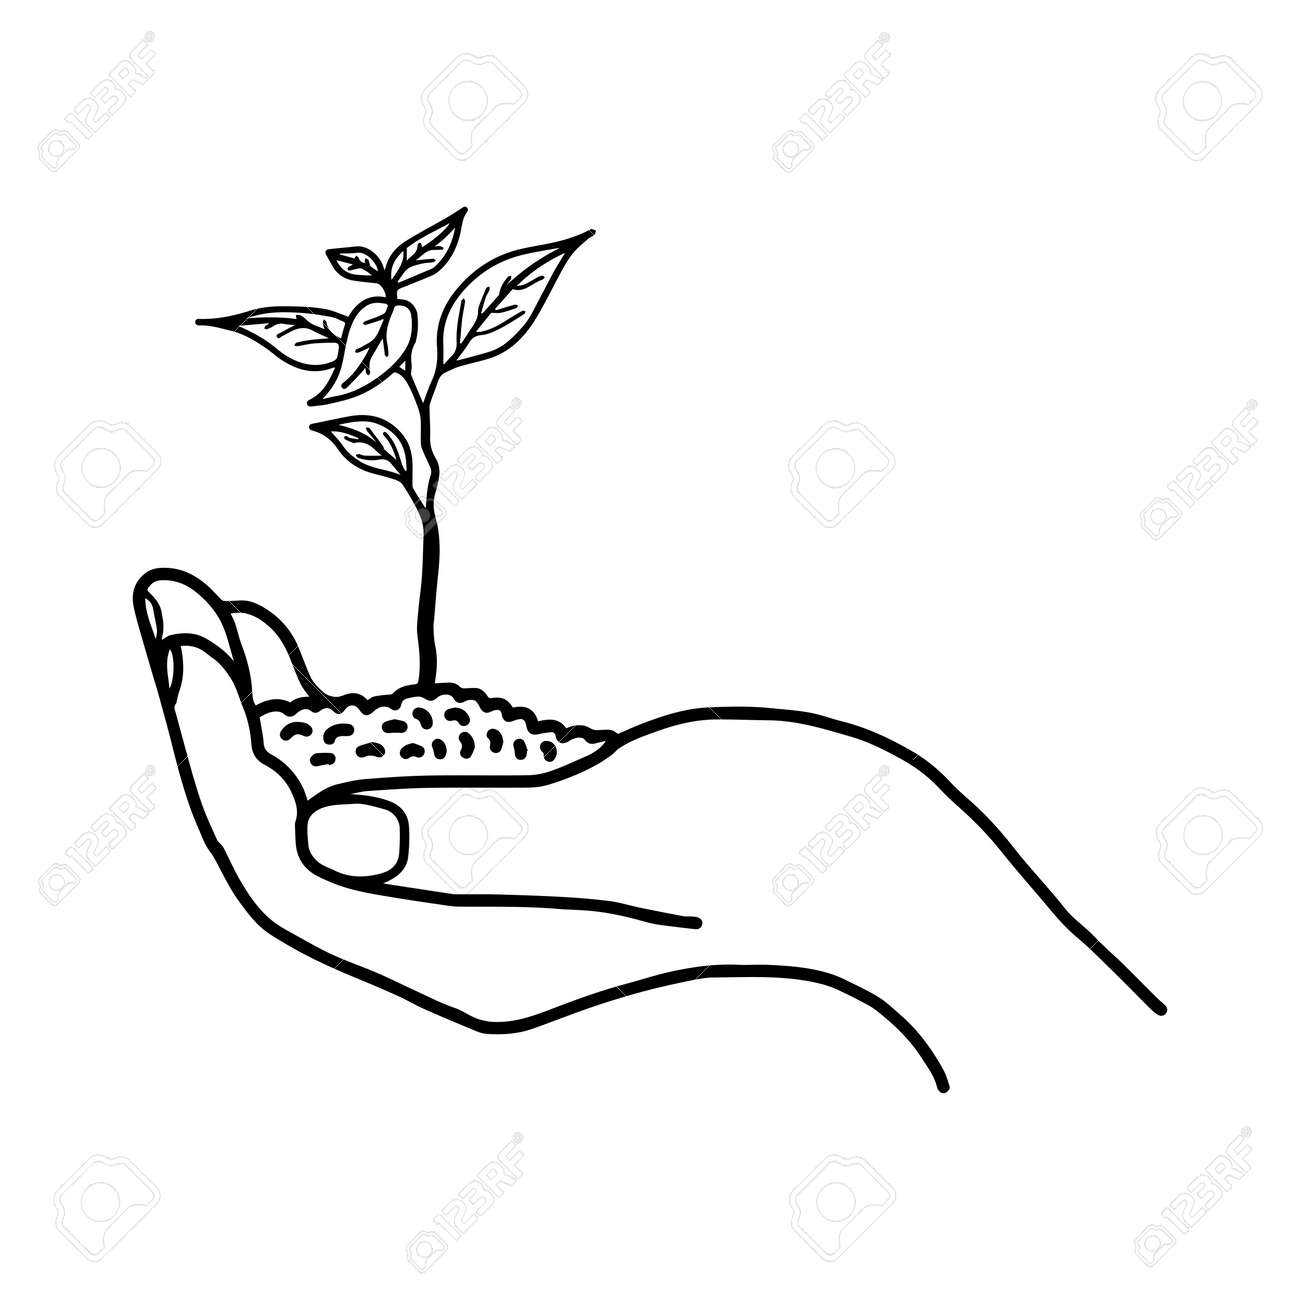 Clipart plant growing